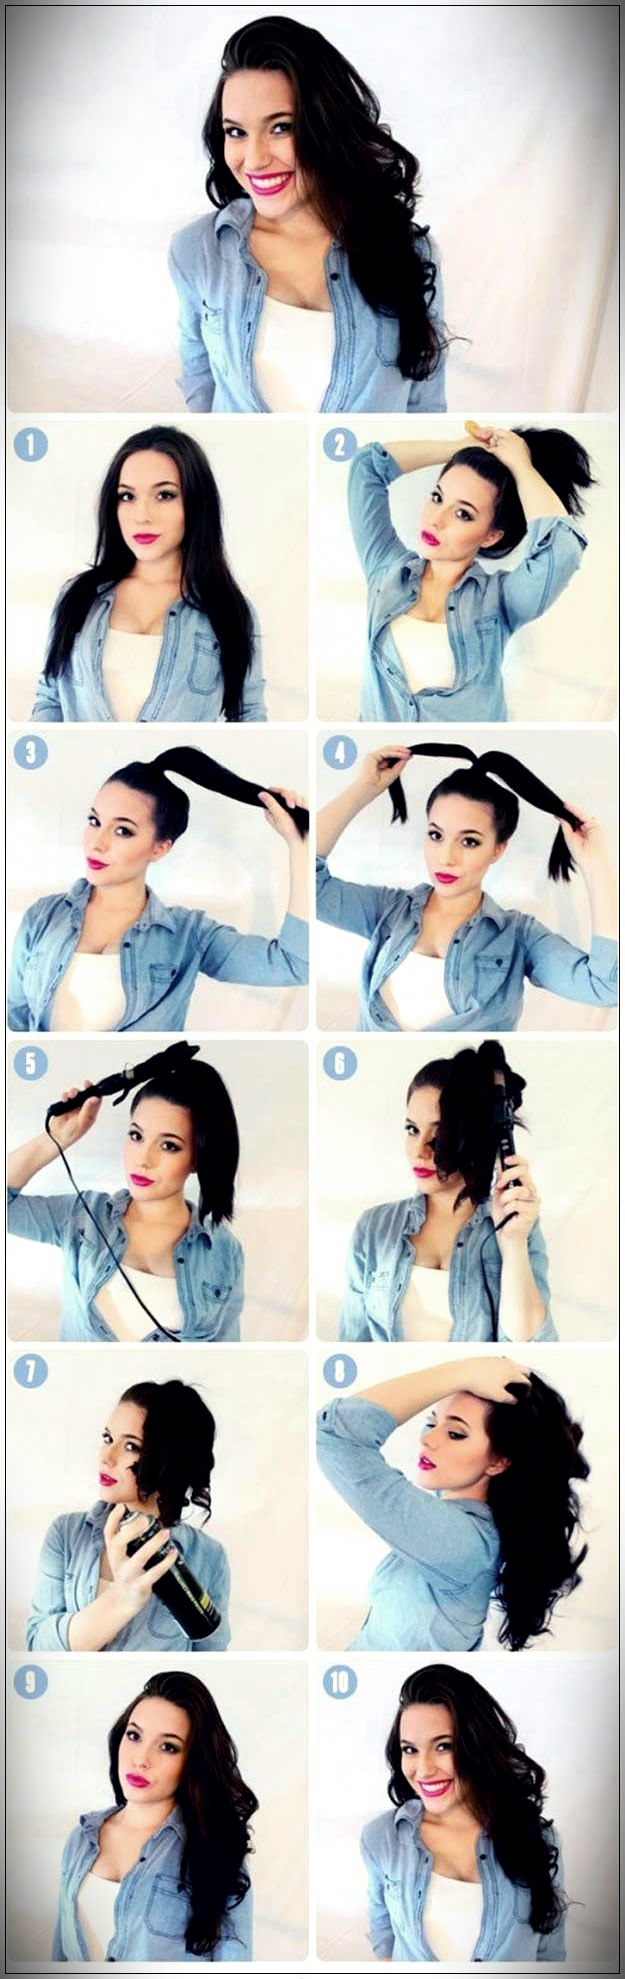 Easy Hairstyles 2019 step by step - easy hairstyles 2019 27